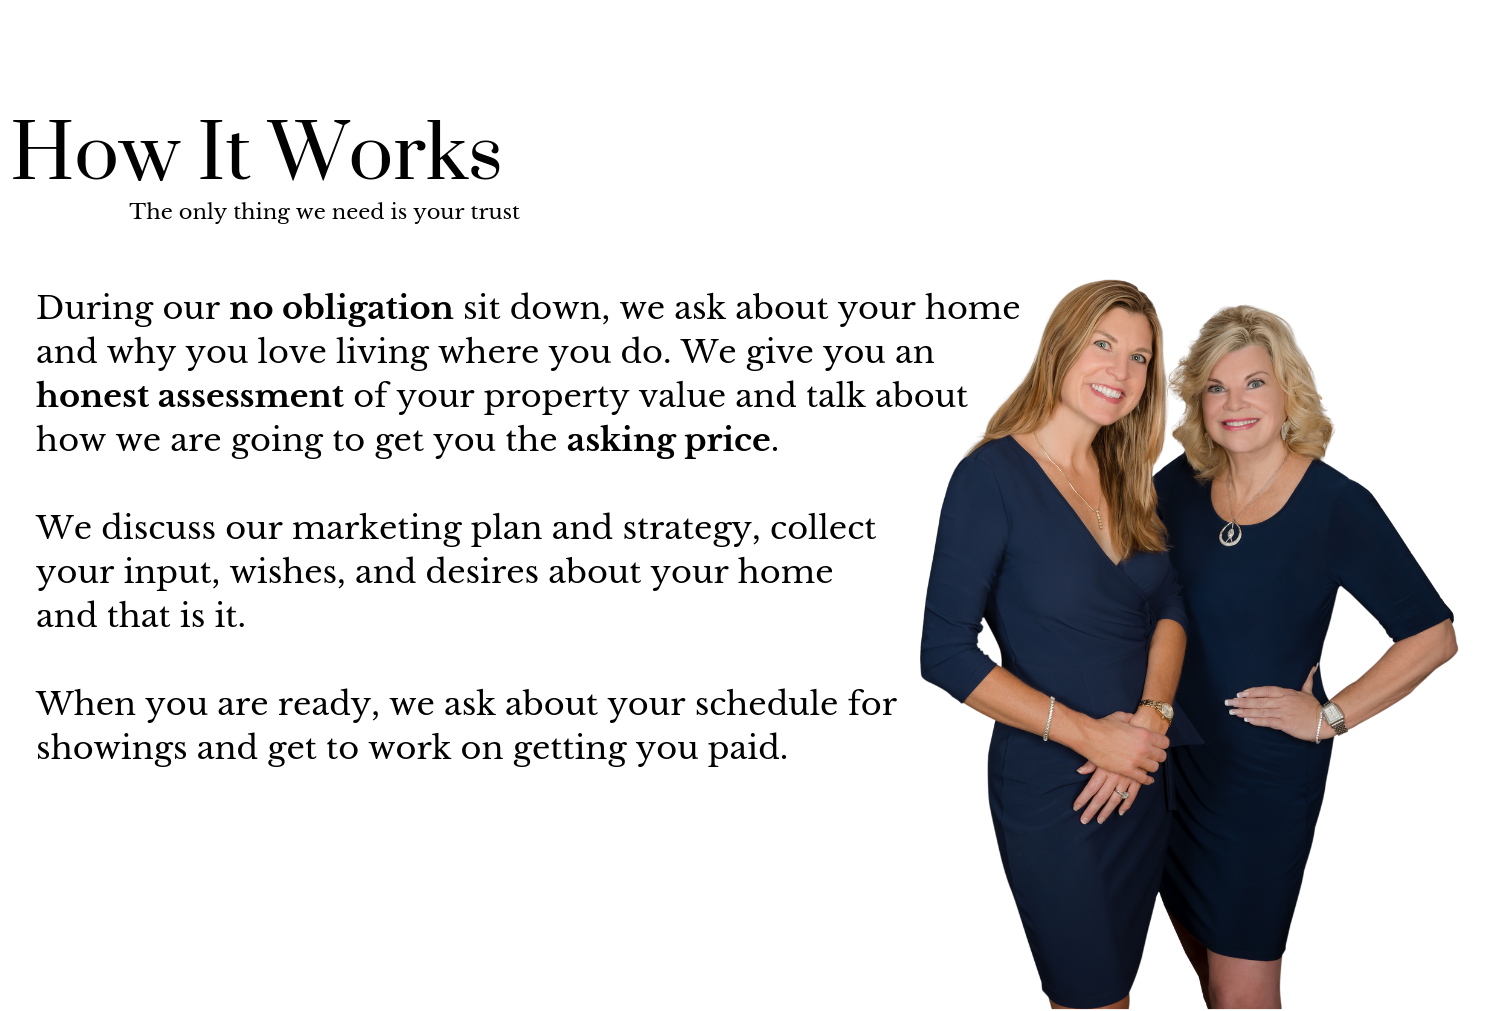 The Heilman Team How It Works. Find out more about how our process works and how The Heilman Team helps buyers and sellers everyday